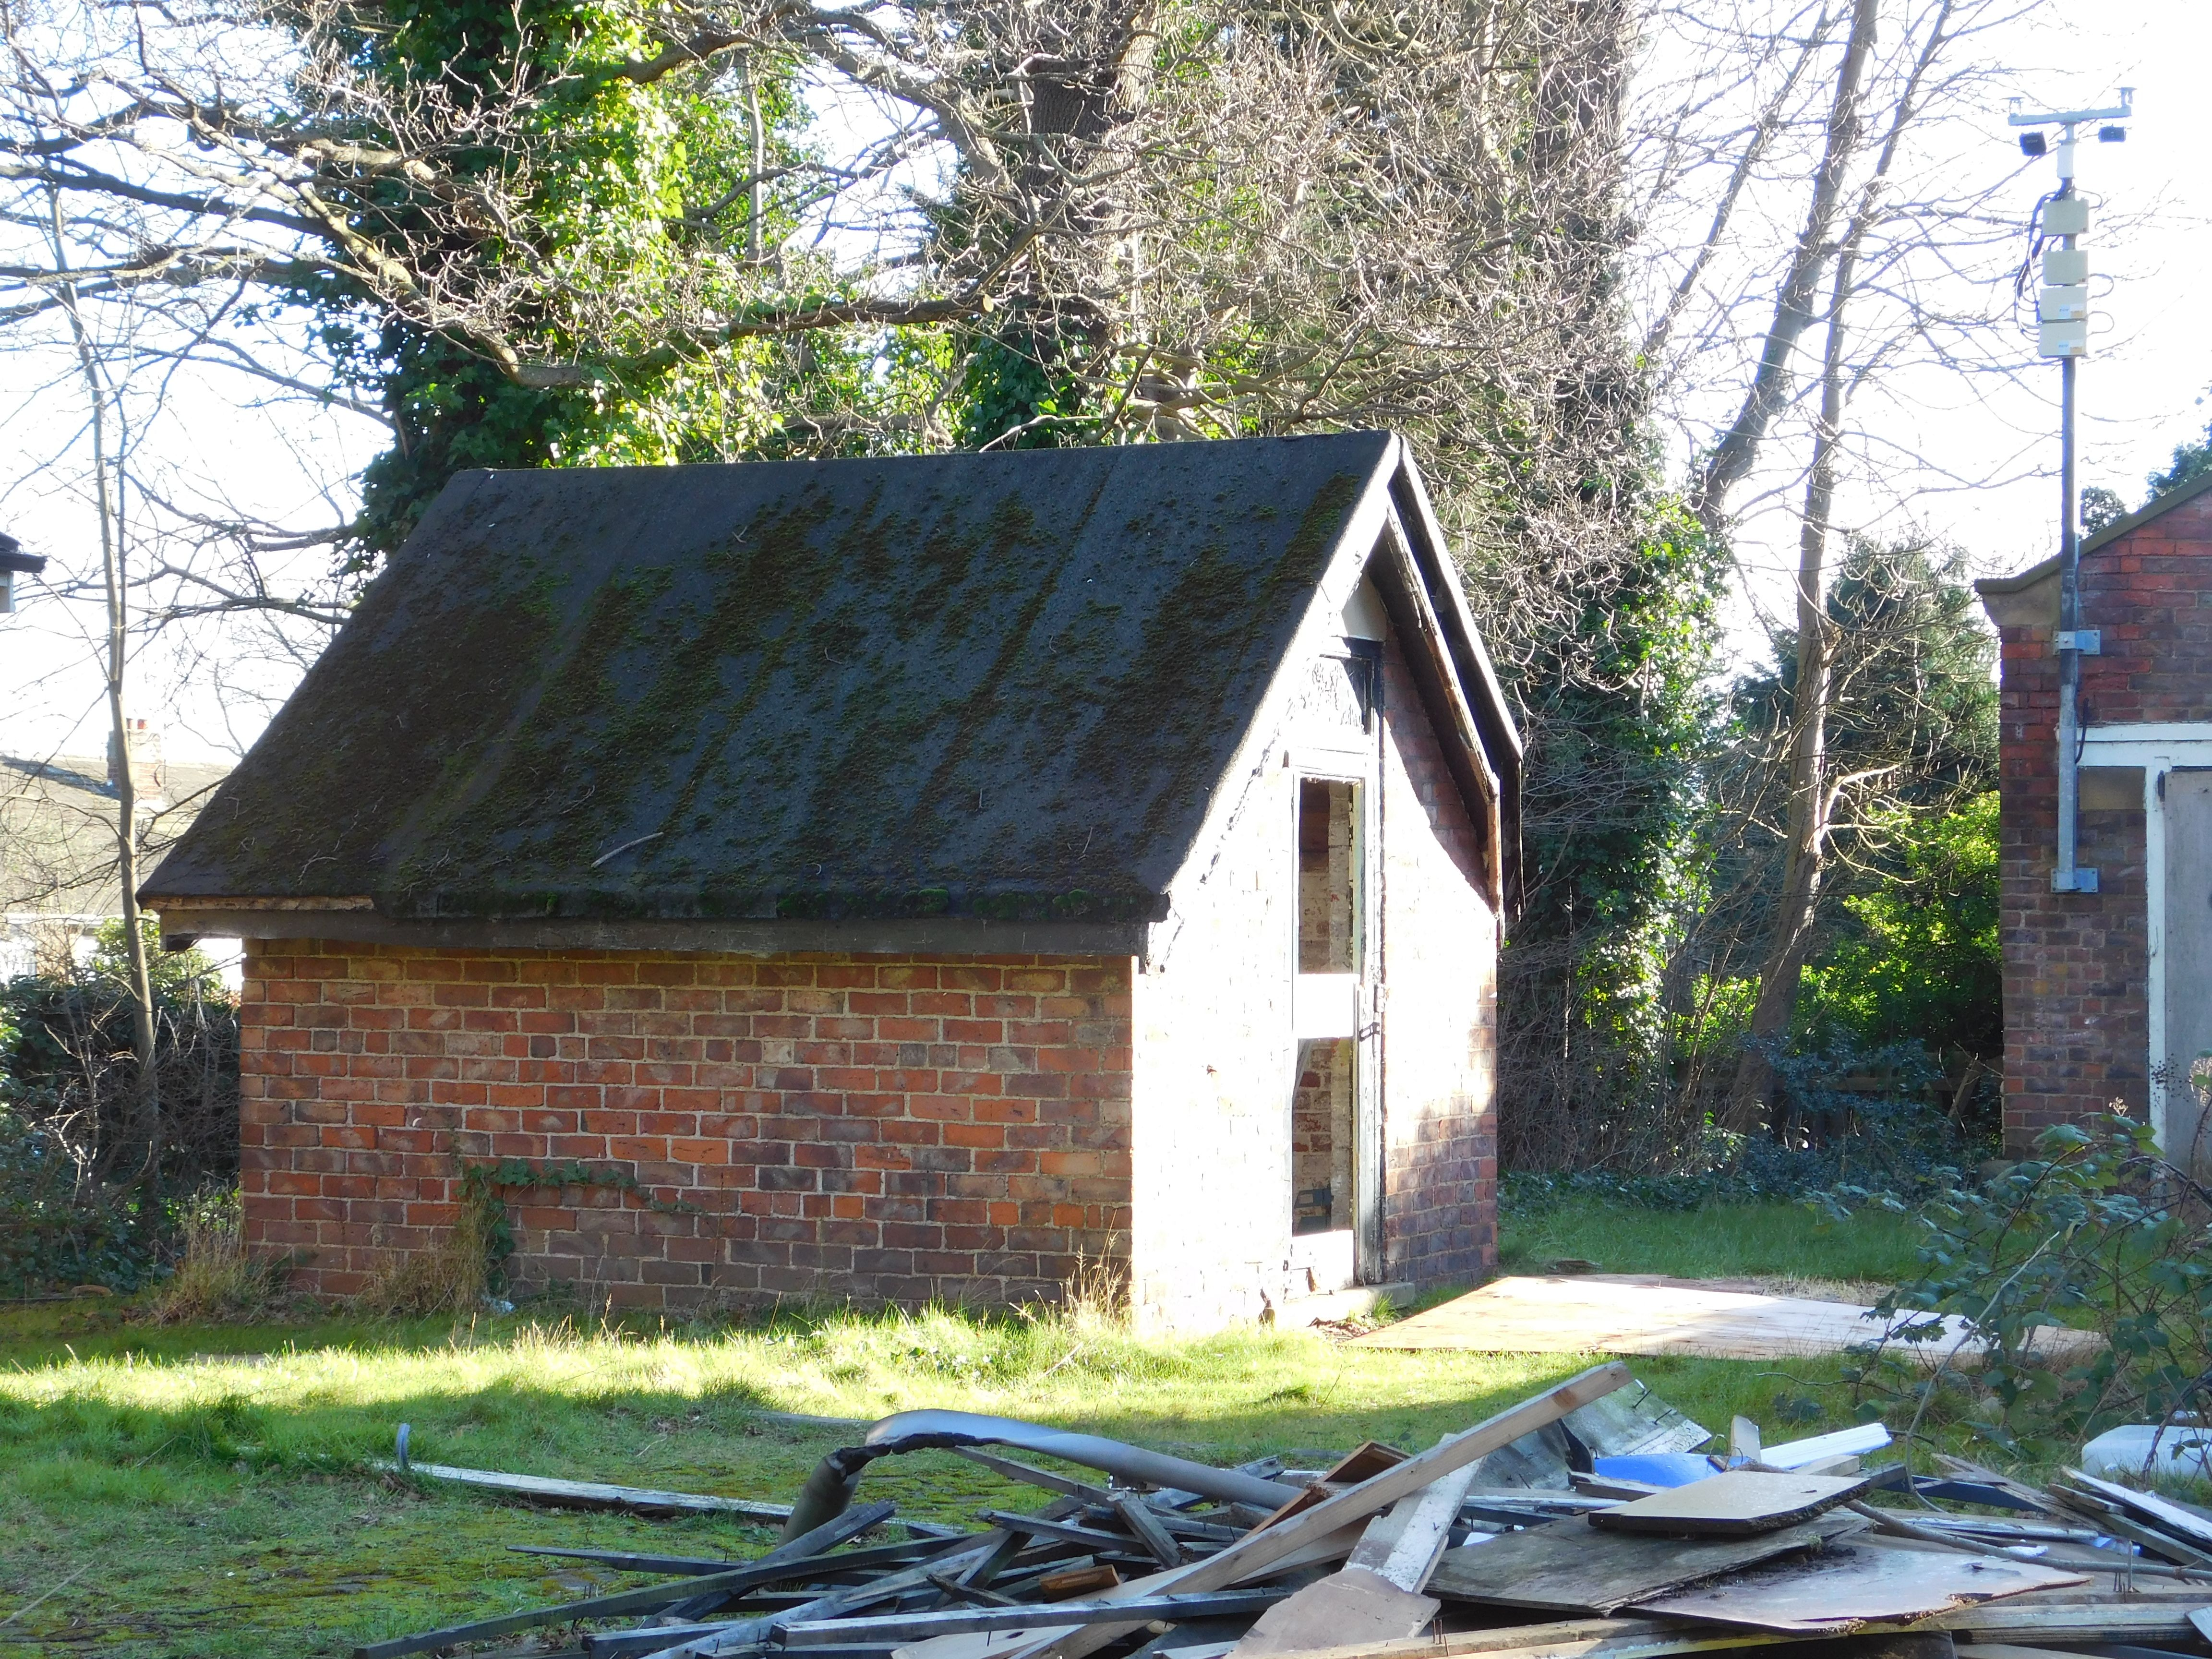 outer shed of the abandoned building